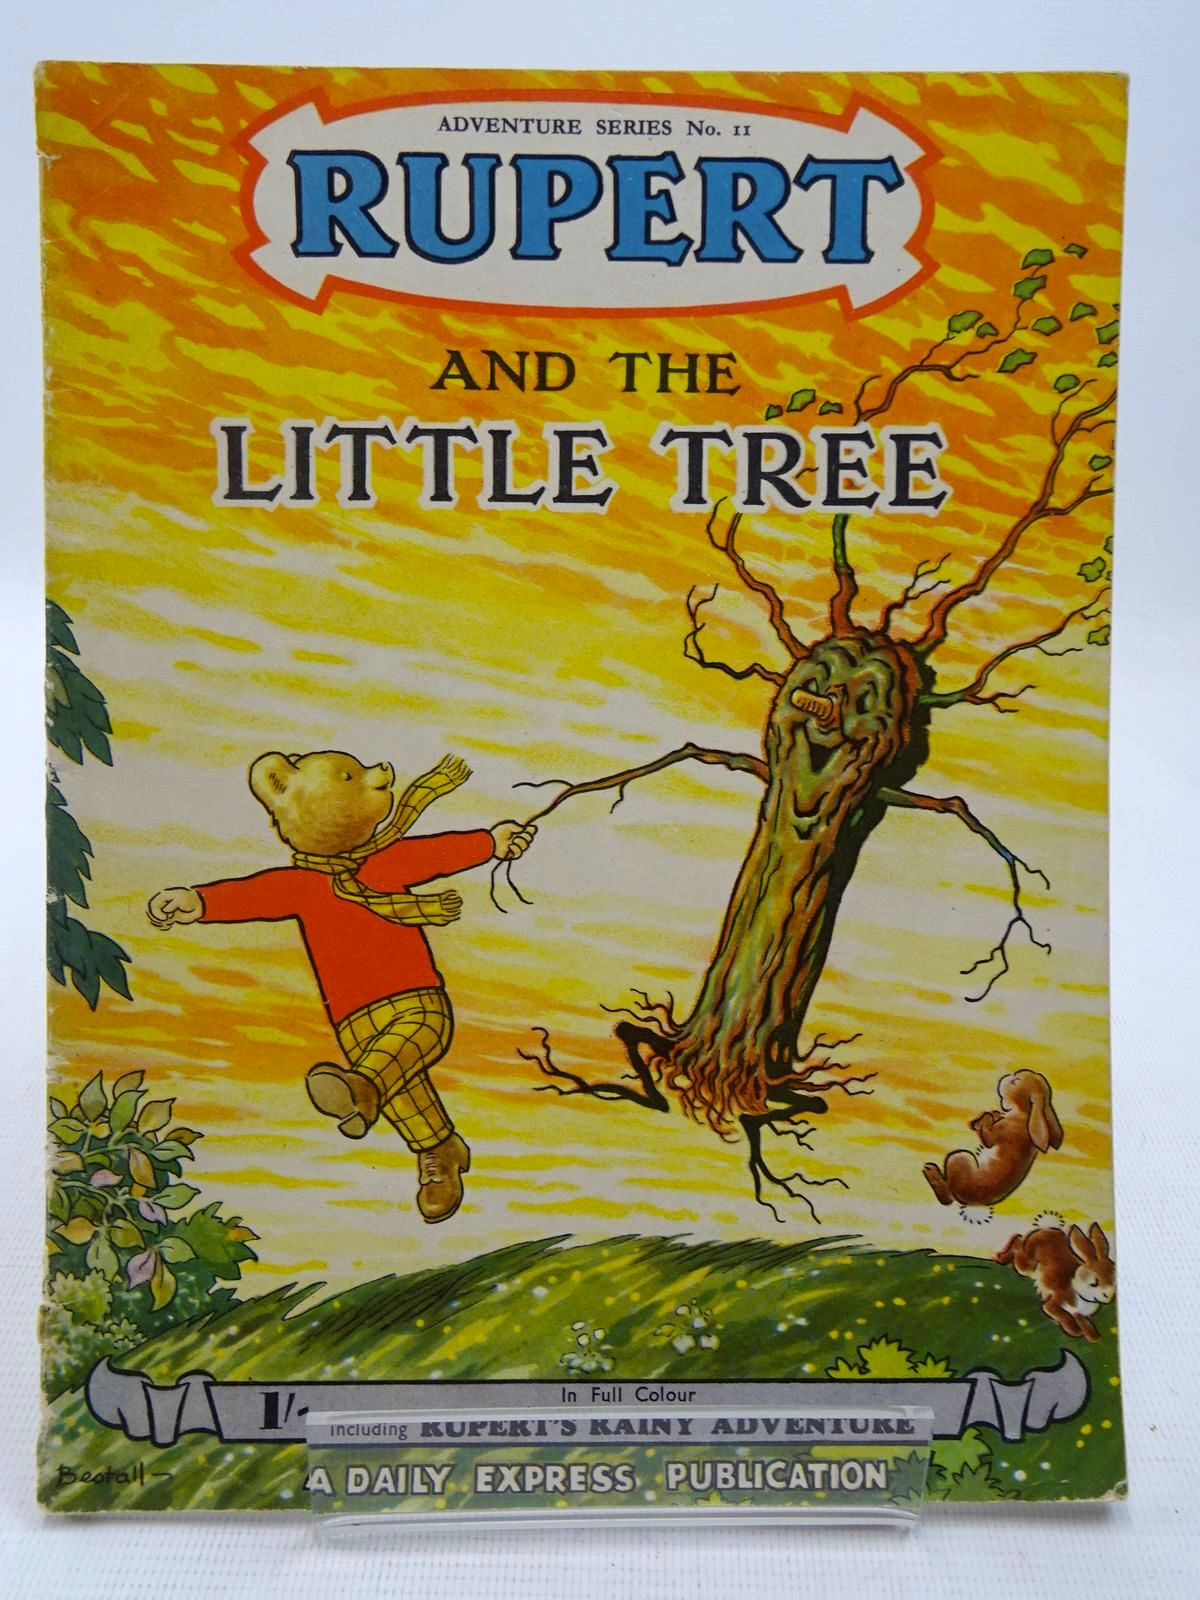 Photo of RUPERT ADVENTURE SERIES No. 11 - RUPERT AND THE LITTLE TREE written by Bestall, Alfred illustrated by Bestall, Alfred published by Daily Express (STOCK CODE: 2128606)  for sale by Stella & Rose's Books